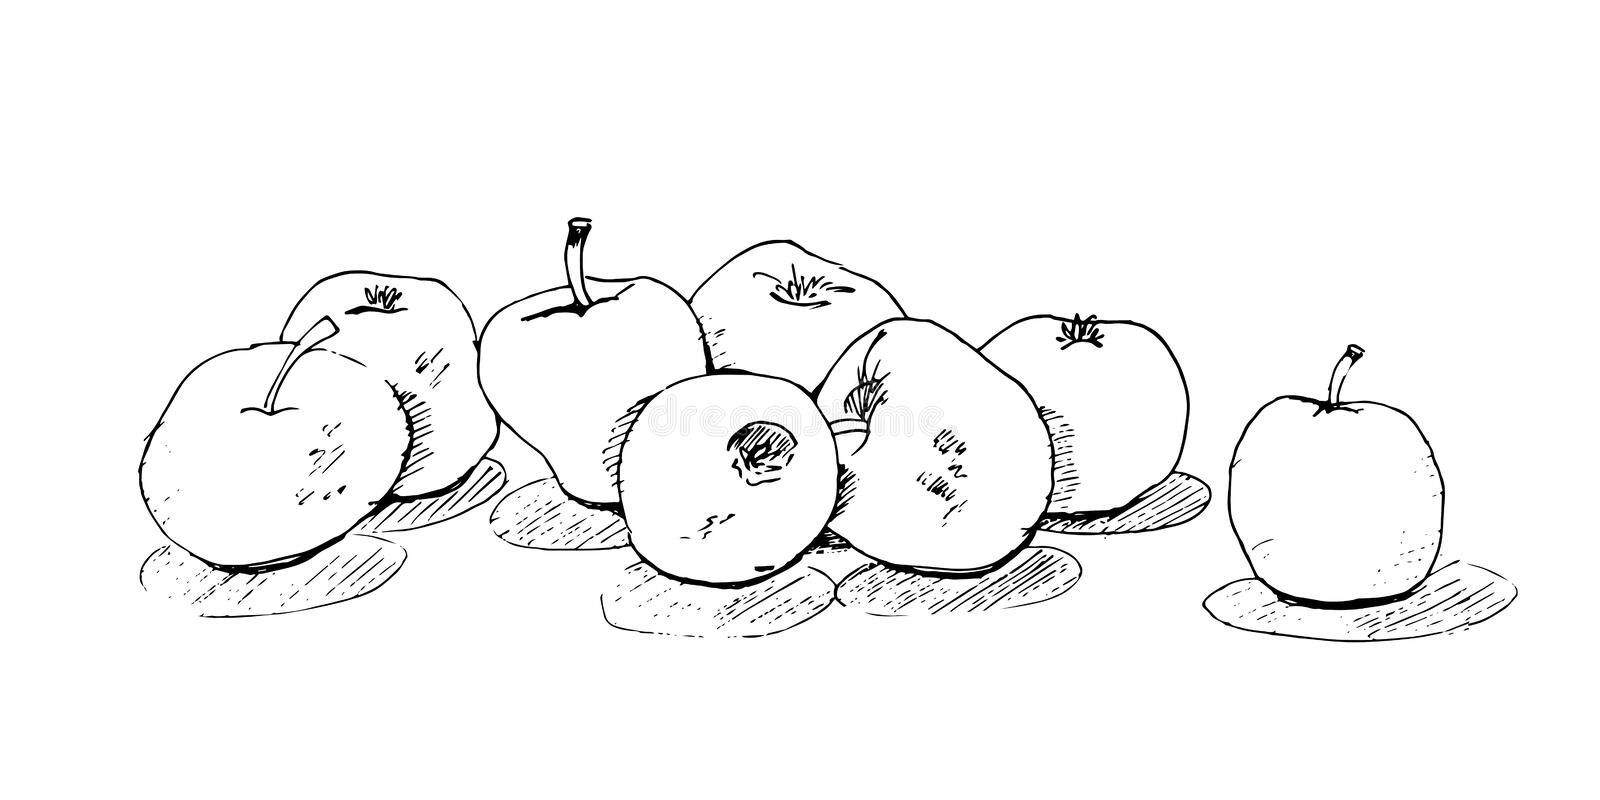 Sketch freehand, delicious juicy apples with shadow. stock illustration